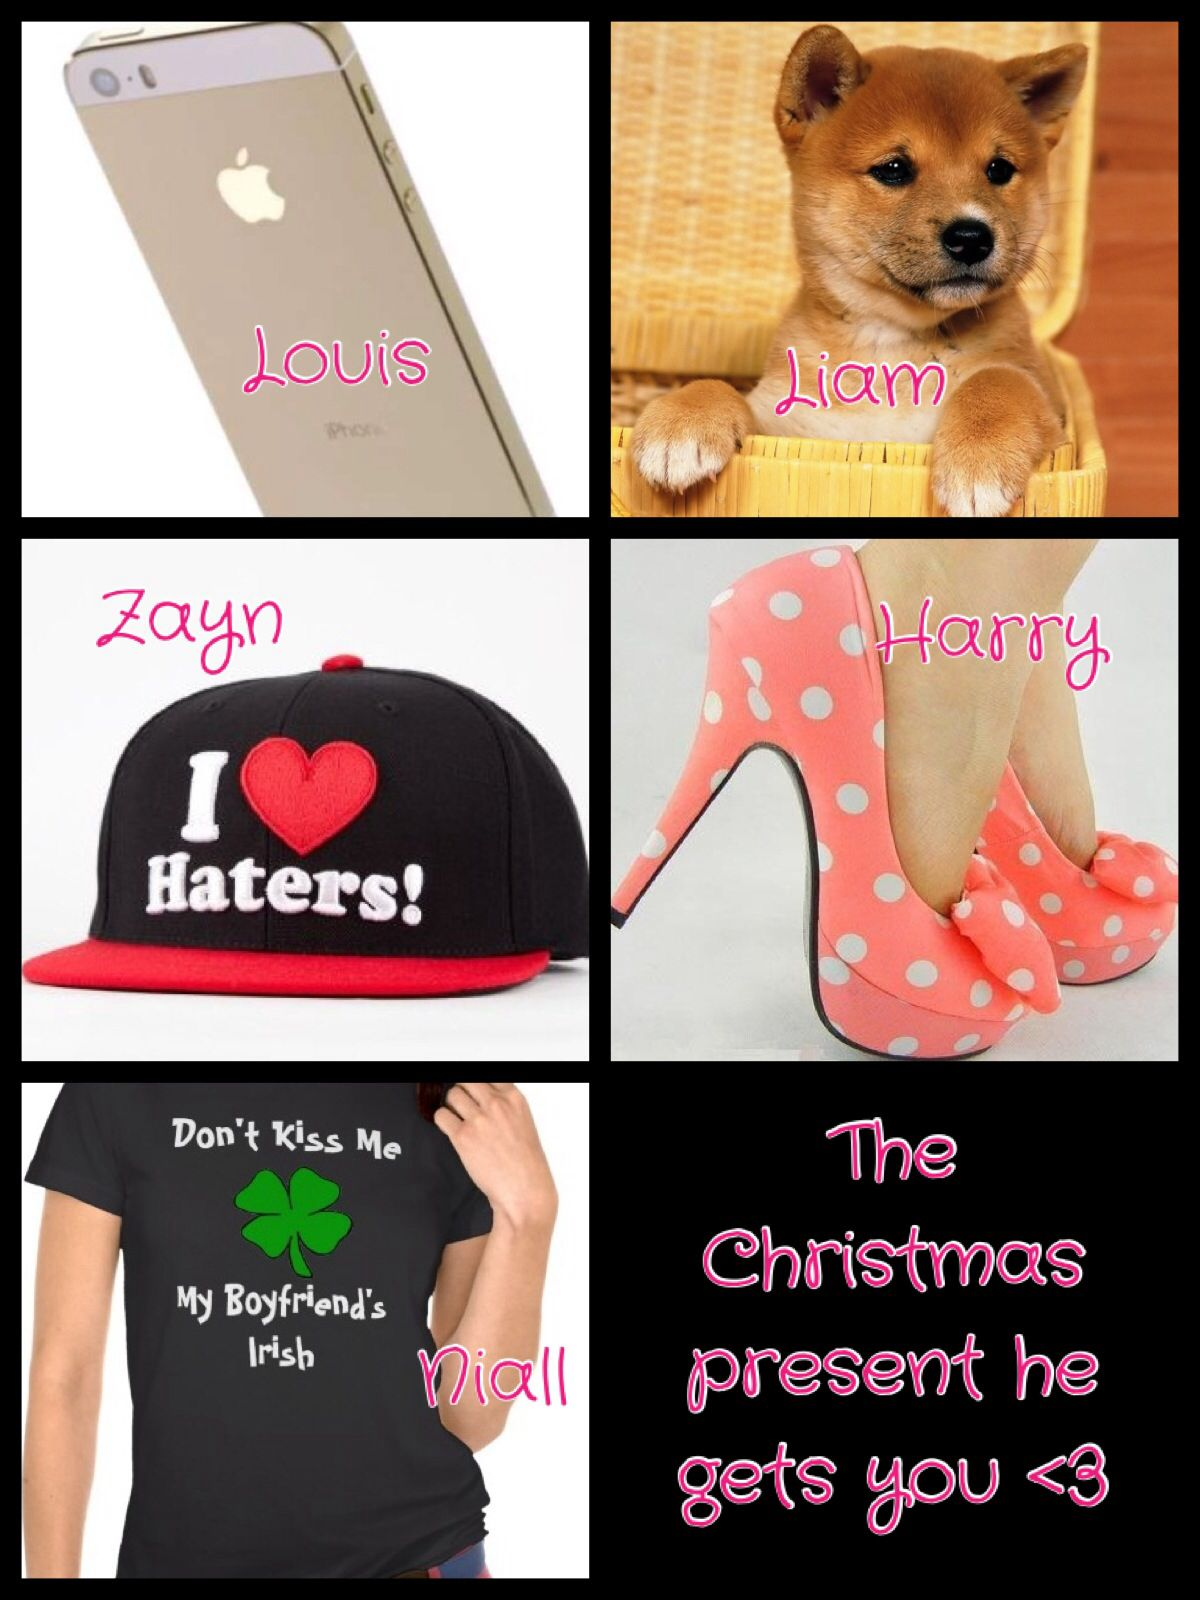 """One direction preference (my edit) please give credit :) """"The Christmas present he gets you <3"""""""